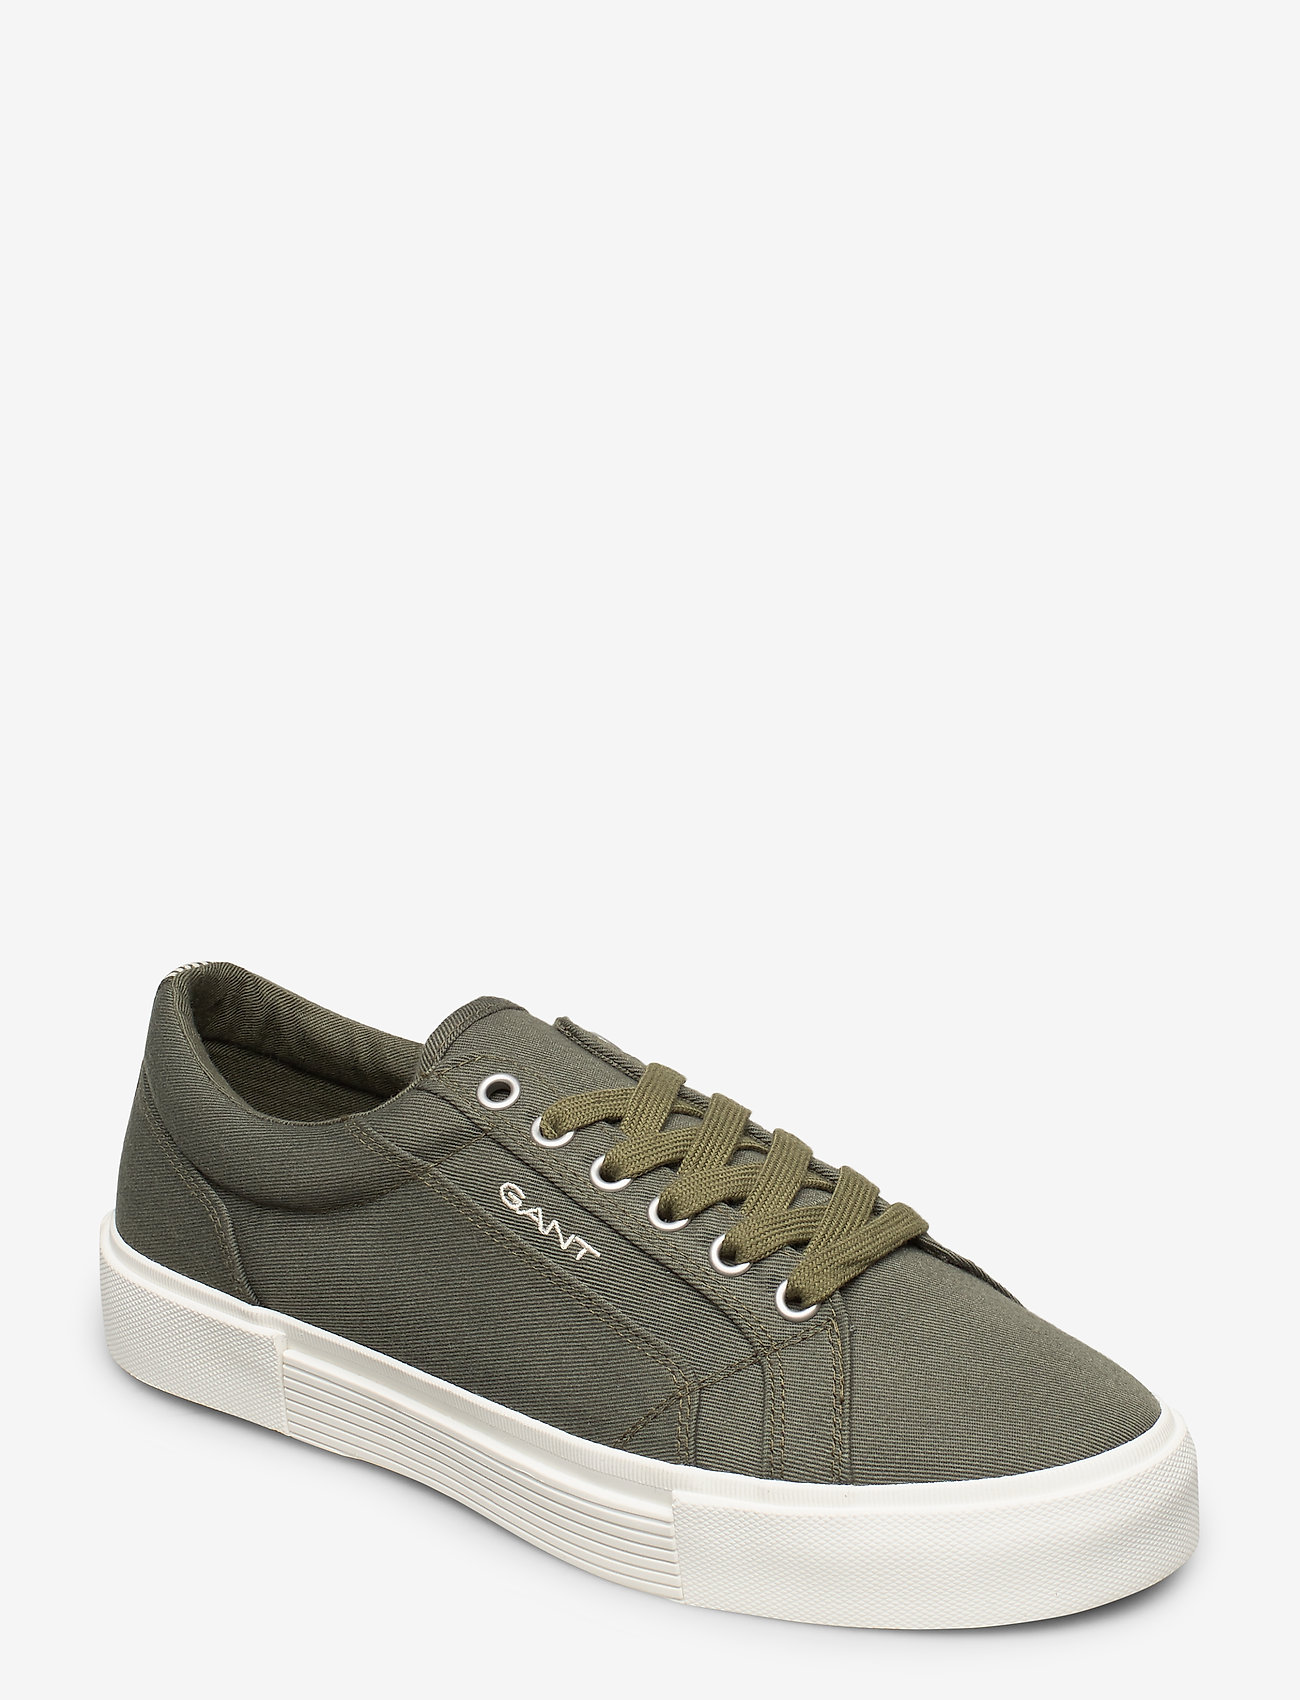 GANT - Champroyal Low laceshoes - low tops - leaf green - 0